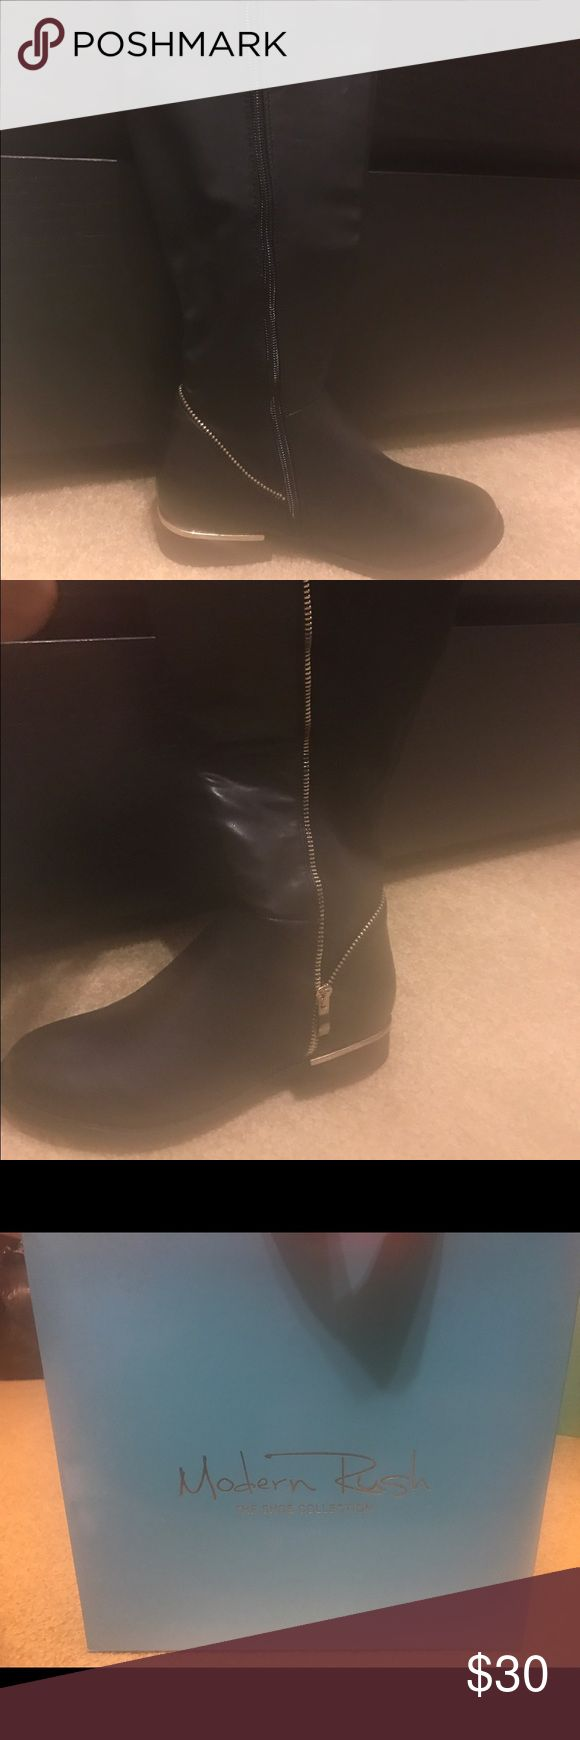 NWT Blk Riding Boots NEW with tags!!   -black with gold zippers -size 7 -will meet in south hills area, Shv or Steele building m-f  *The fit around the calf is tight, I would recommend for a smaller calf individual. I am average size and can fit riding boots bought in the stores. modern rush  Shoes Combat & Moto Boots